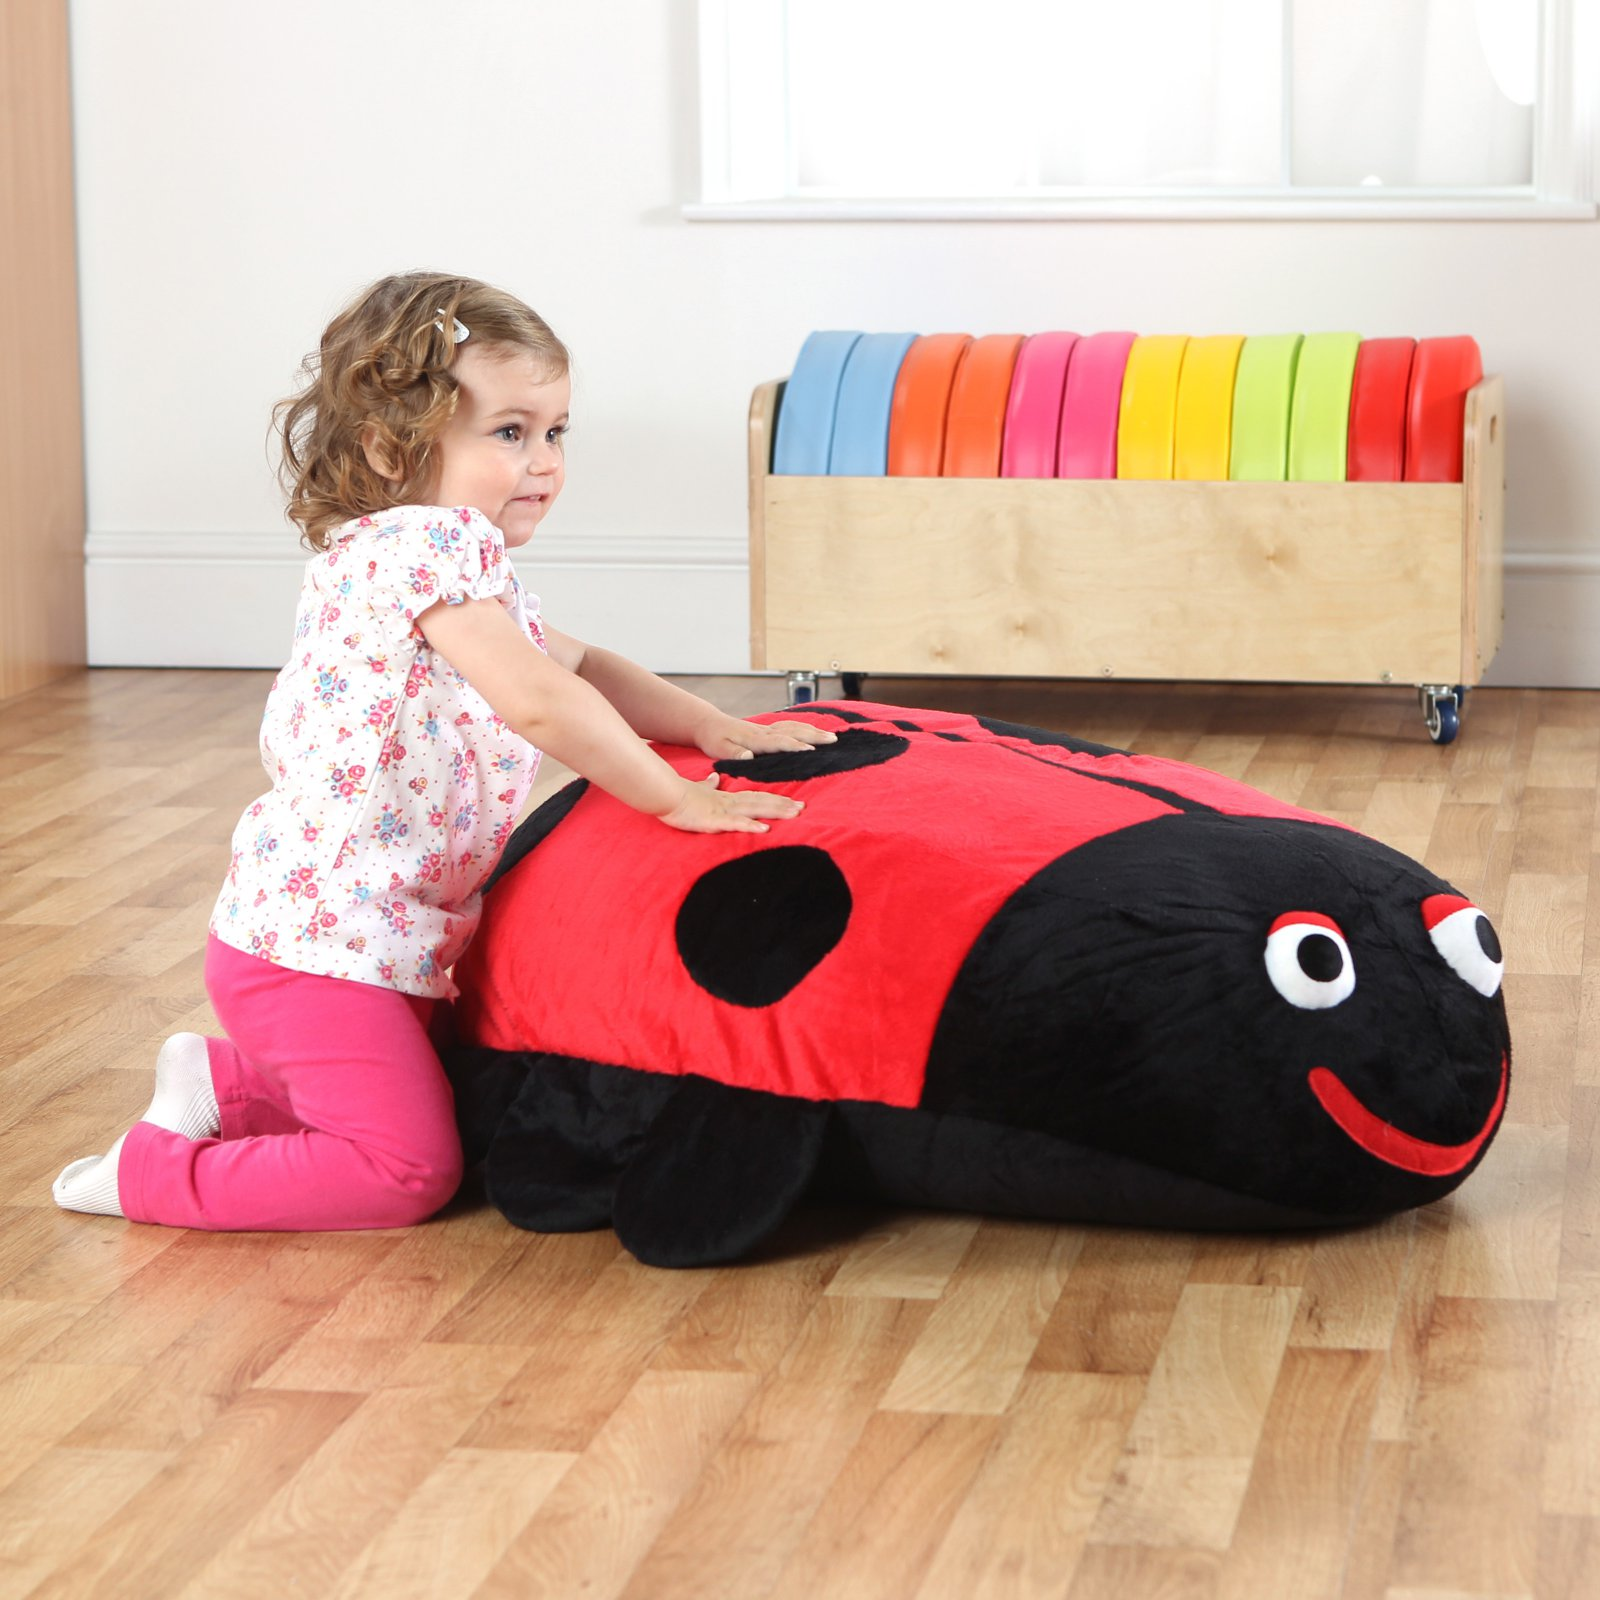 Kalokids Dotty Ladybug Giant Floor Cushion